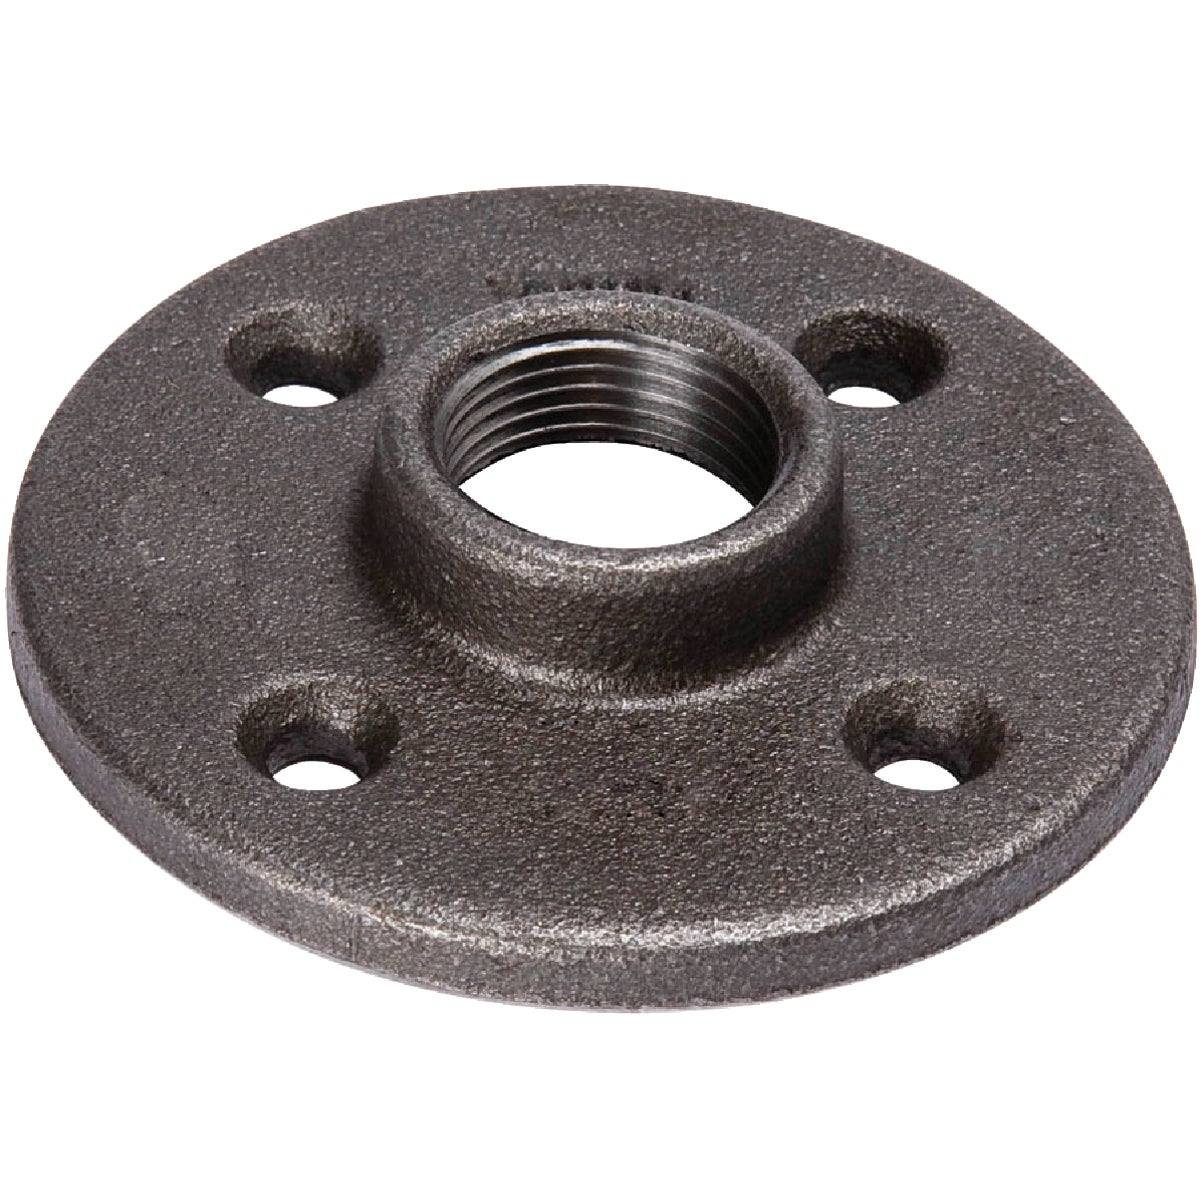 "3/4"" BLACK FLANGE - 521-604BG by Mueller B K"